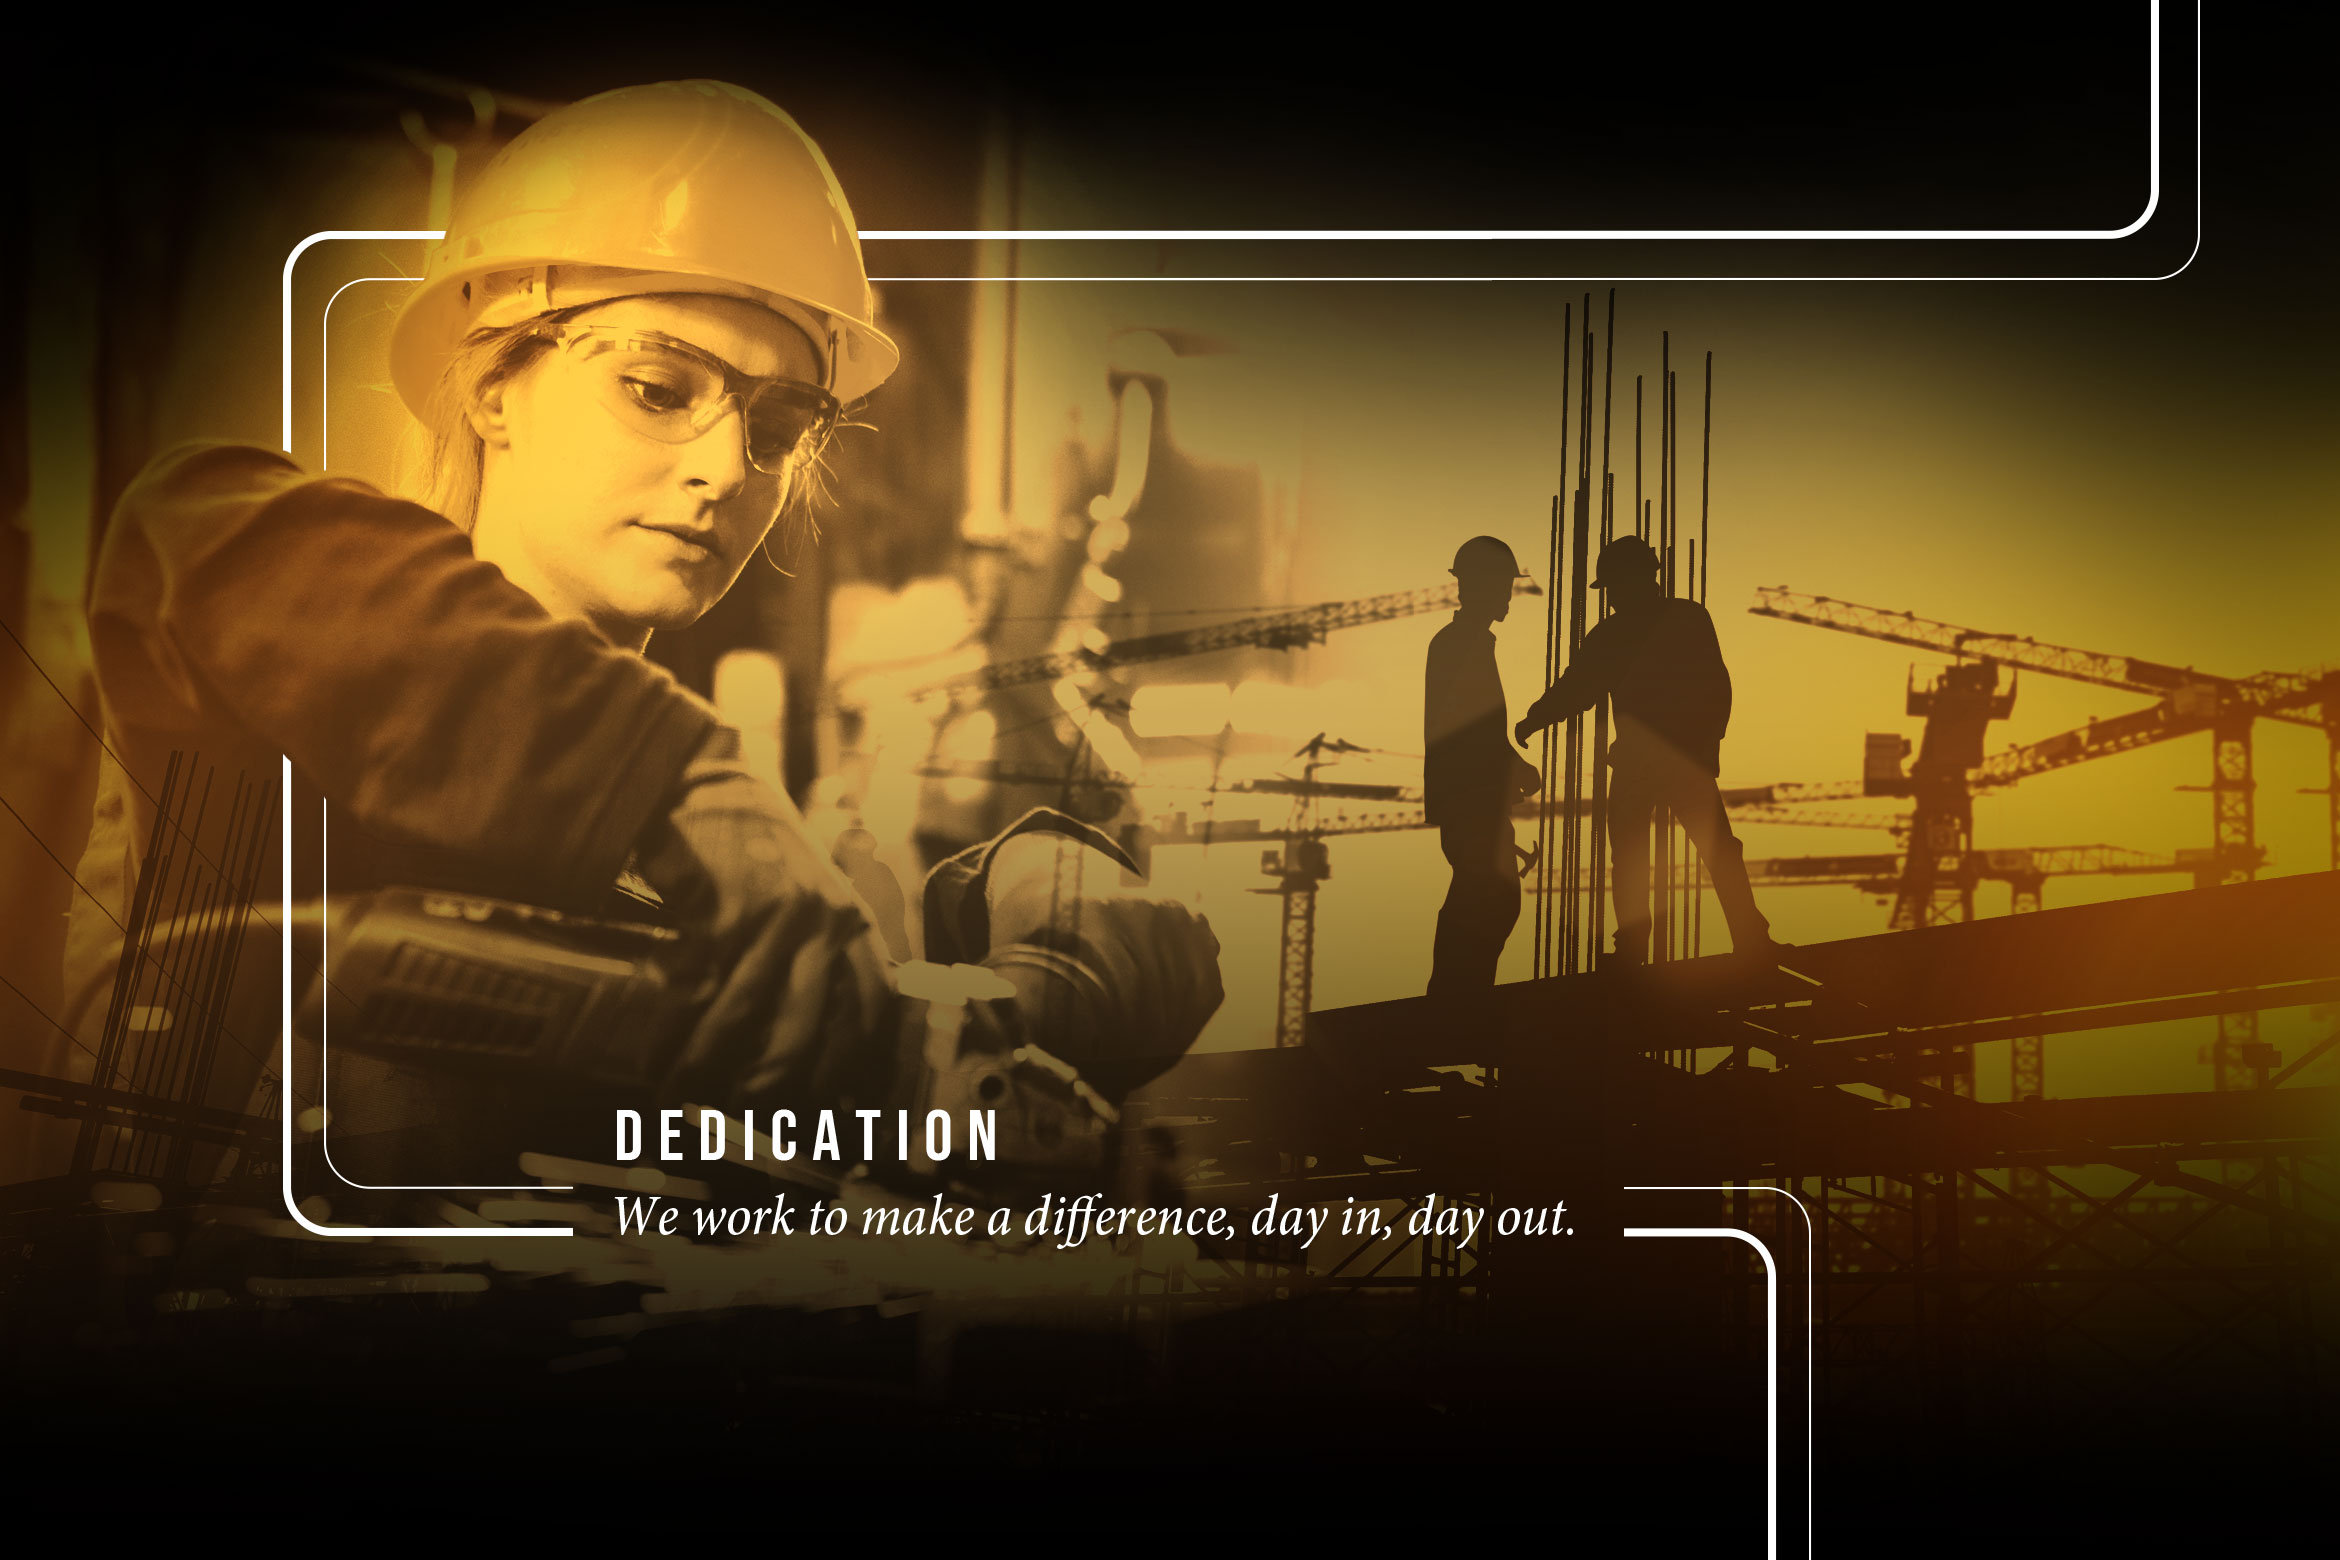 Dedication: We work to make a difference, day in, day out.